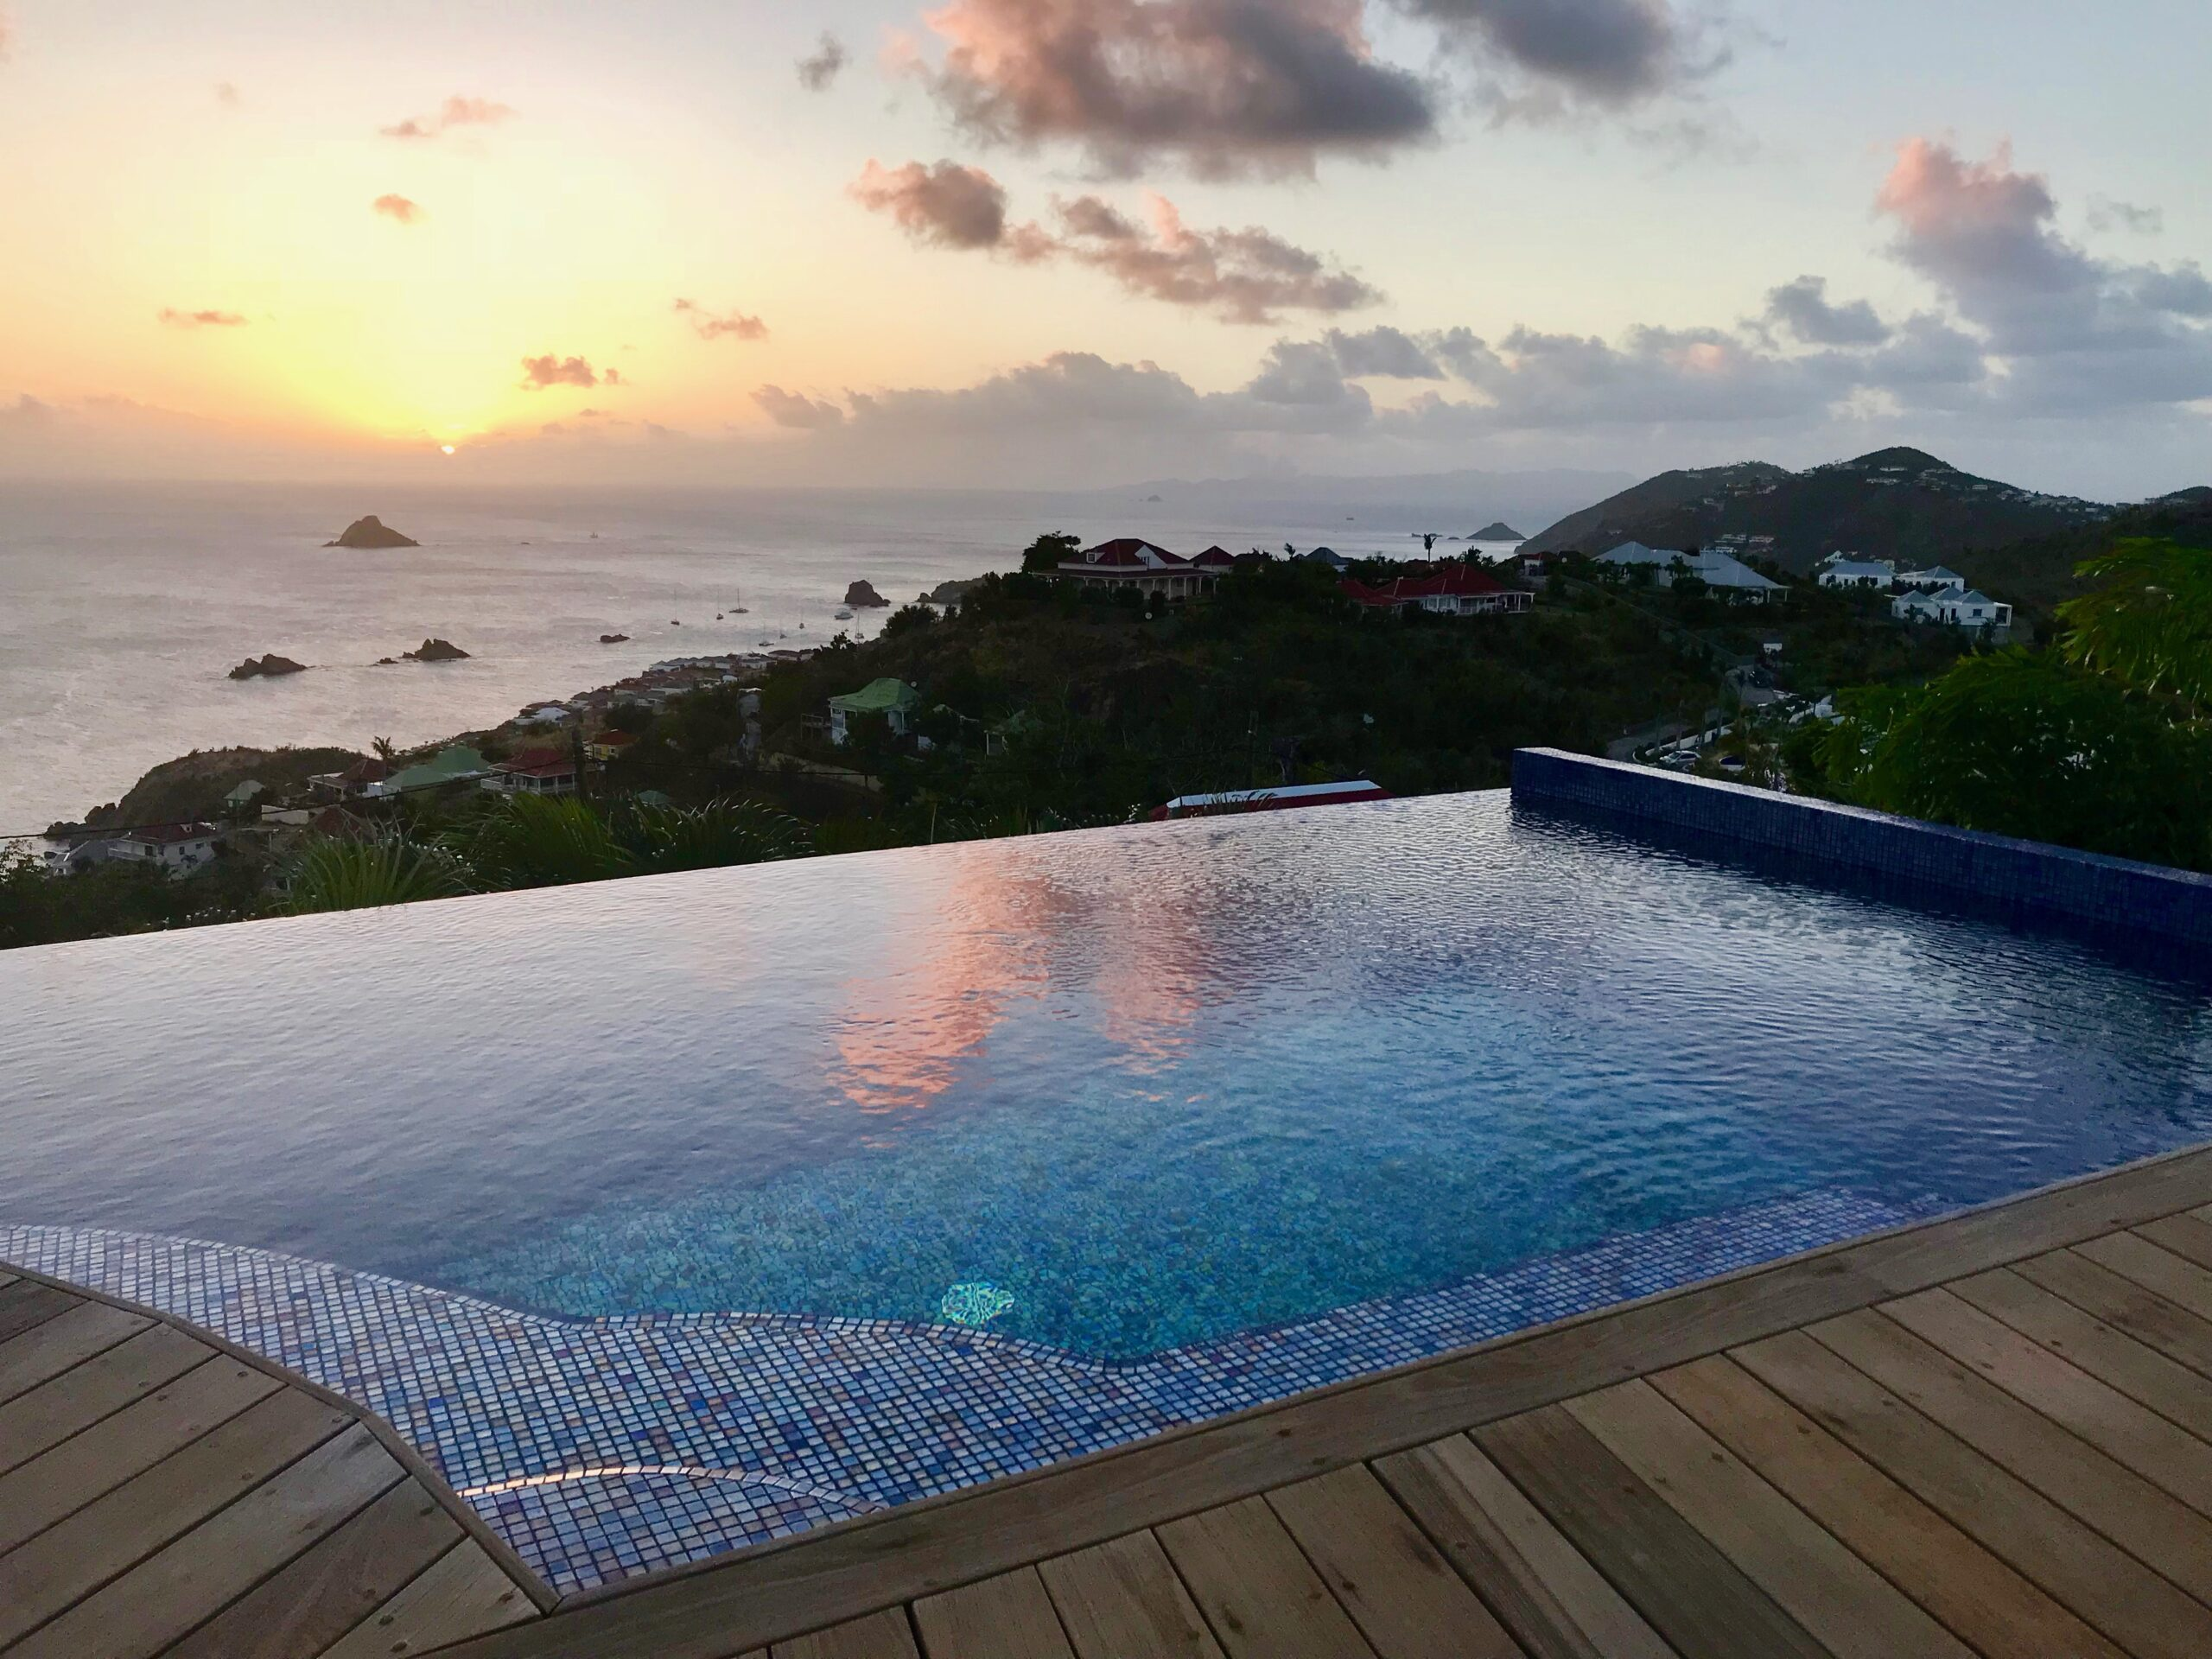 caribbean sunset with a private beach house pool